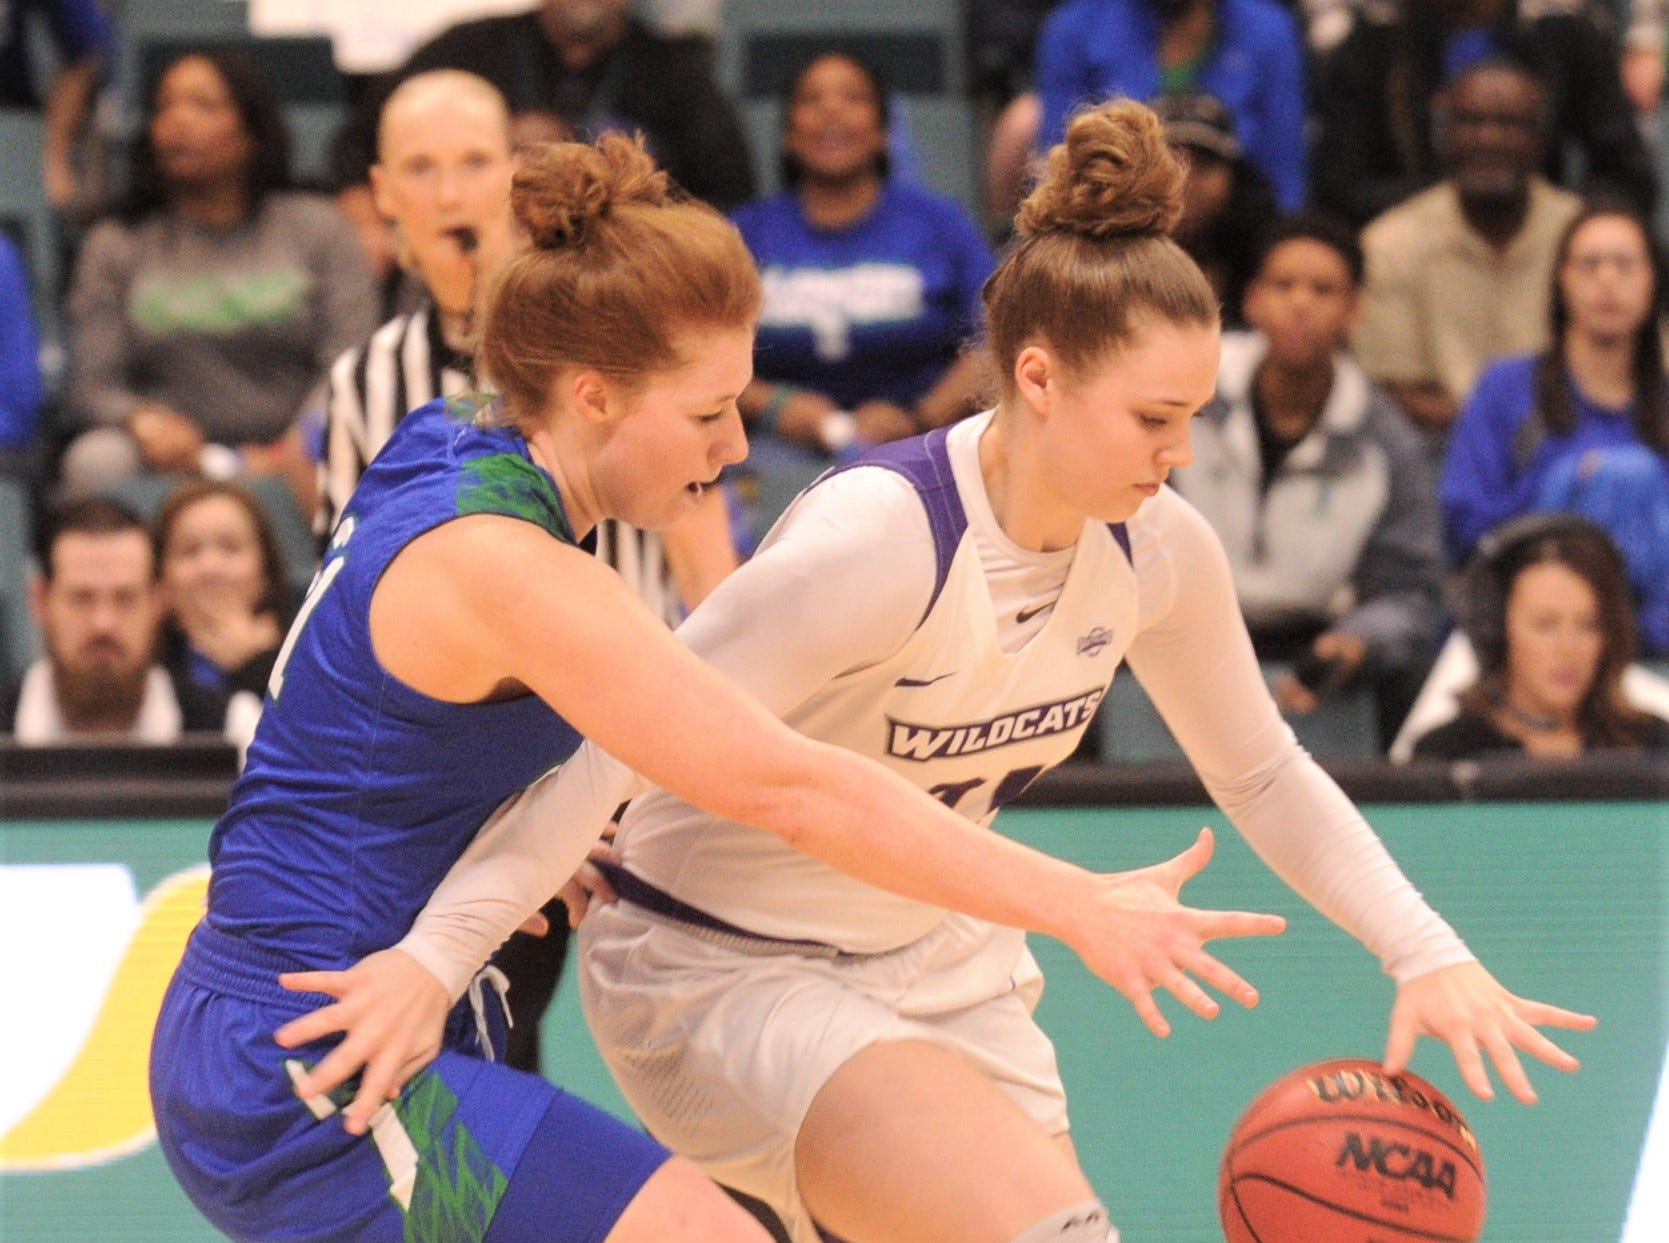 Texas A&M-Corpus Christi's Emma Young, left, tries to knock the ball away from ACU's Madi Miller. ACU beat the Islanders 69-68 in the Southland Conference women's tournament championship game Sunday, March 17, 2019, at the Merrell Center in Katy.